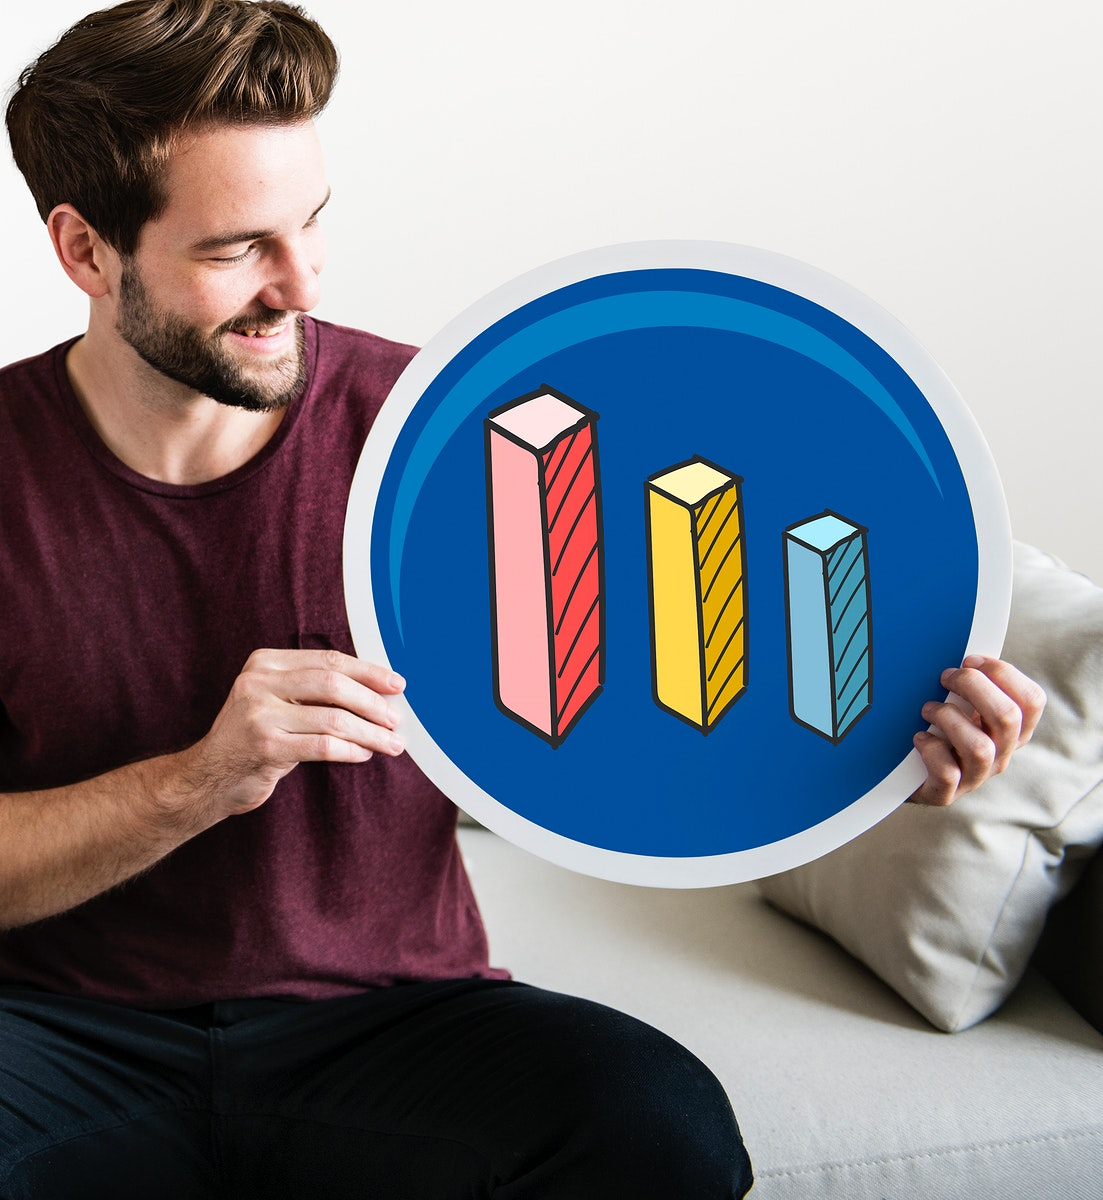 Young man holding a bar graph icon